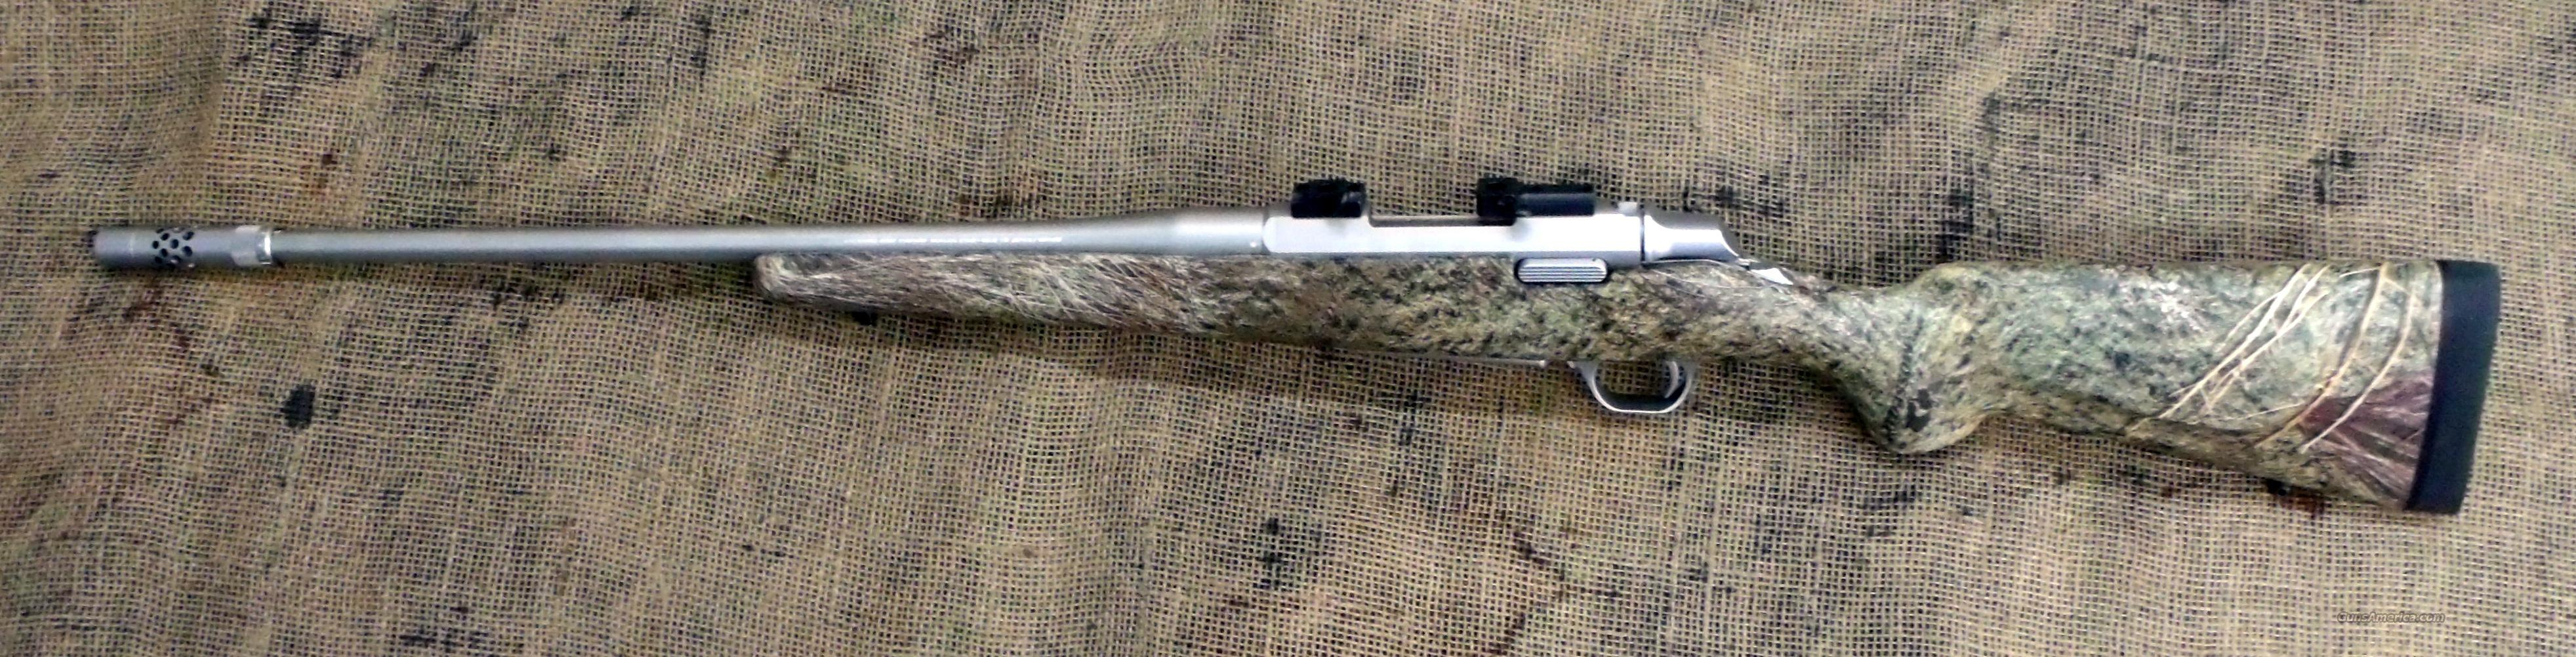 BROWNING A-Bolt II, Stainless,  270 WSM Cal.  Guns > Rifles > Browning Rifles > Bolt Action > Hunting > Stainless